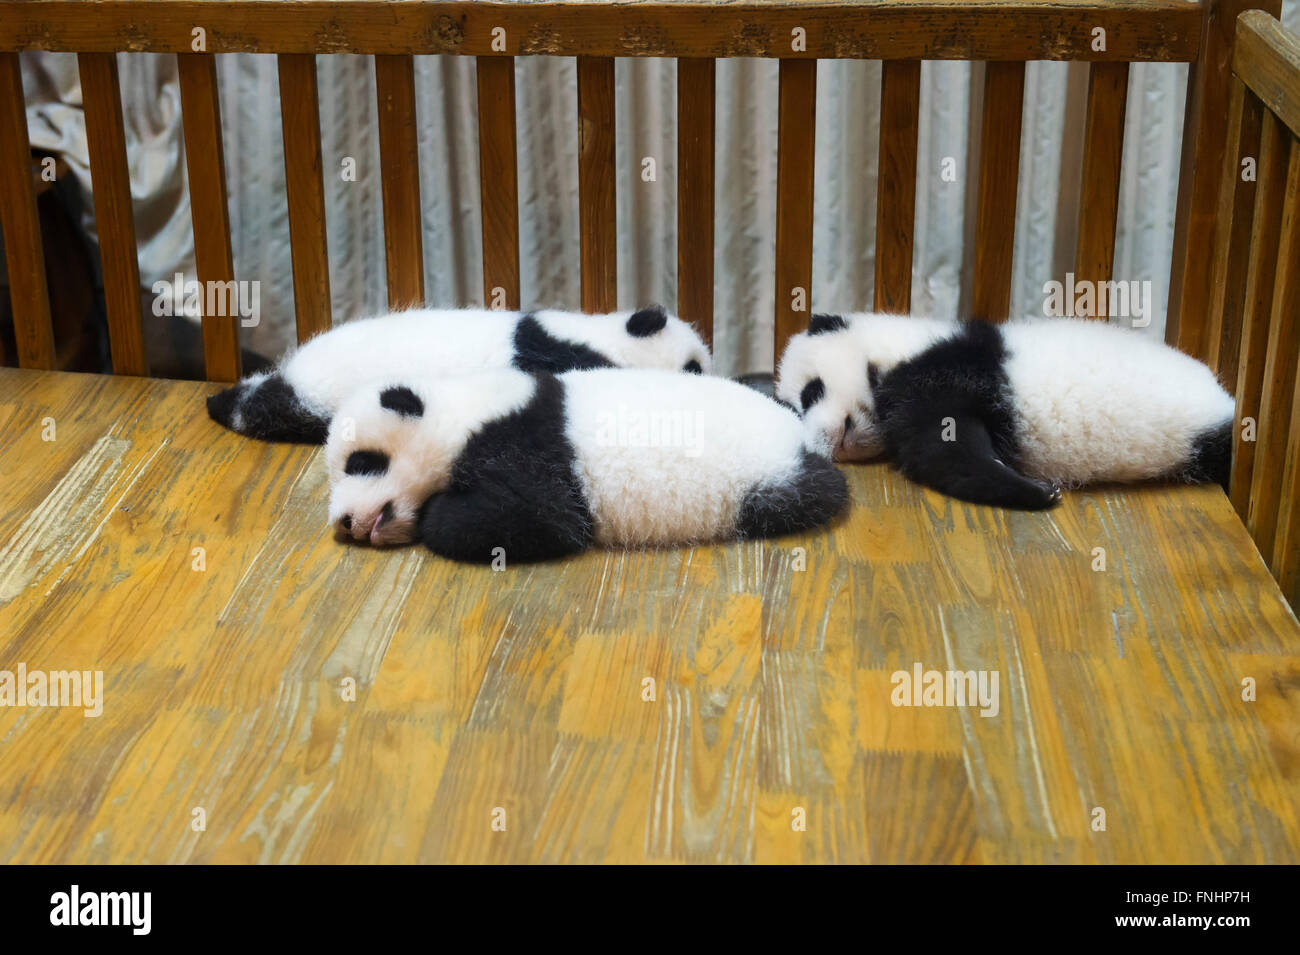 Baby Pandas (Ailuropoda melanoleuca) in the Chengdu Giant Panda Breeding Center China Conservation and Research - Stock Image